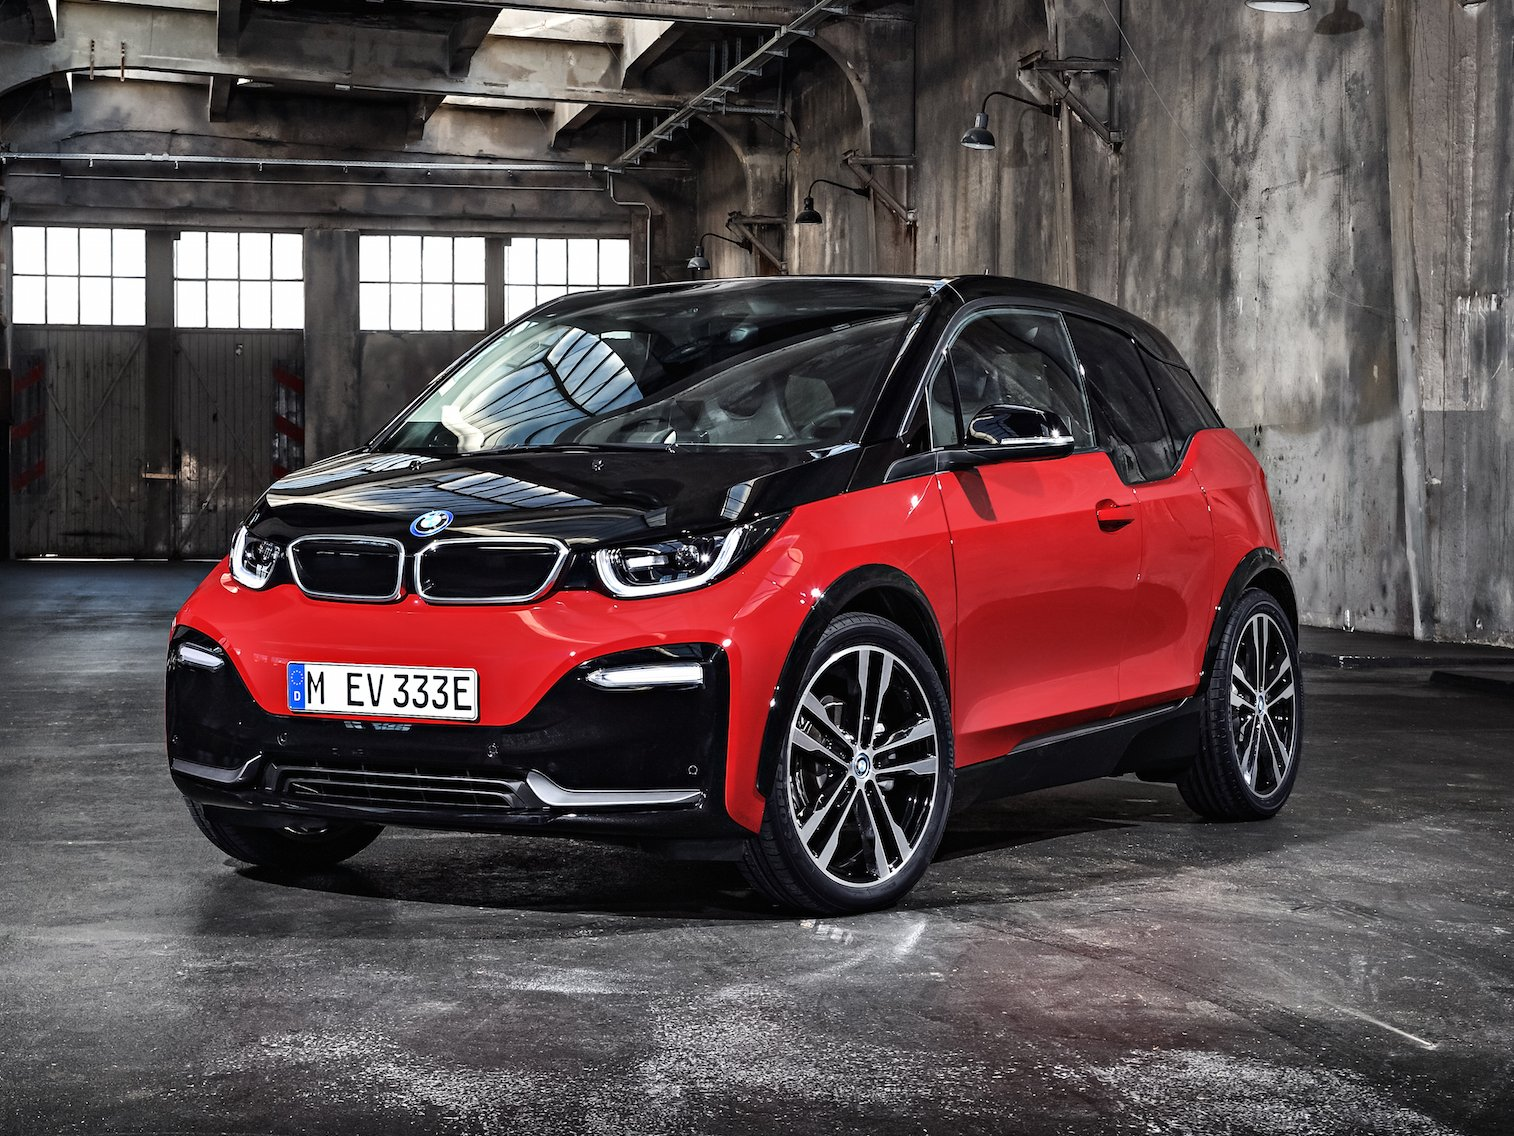 bmw reveals a beefier and sportier 2018 i3s ev to rival. Black Bedroom Furniture Sets. Home Design Ideas